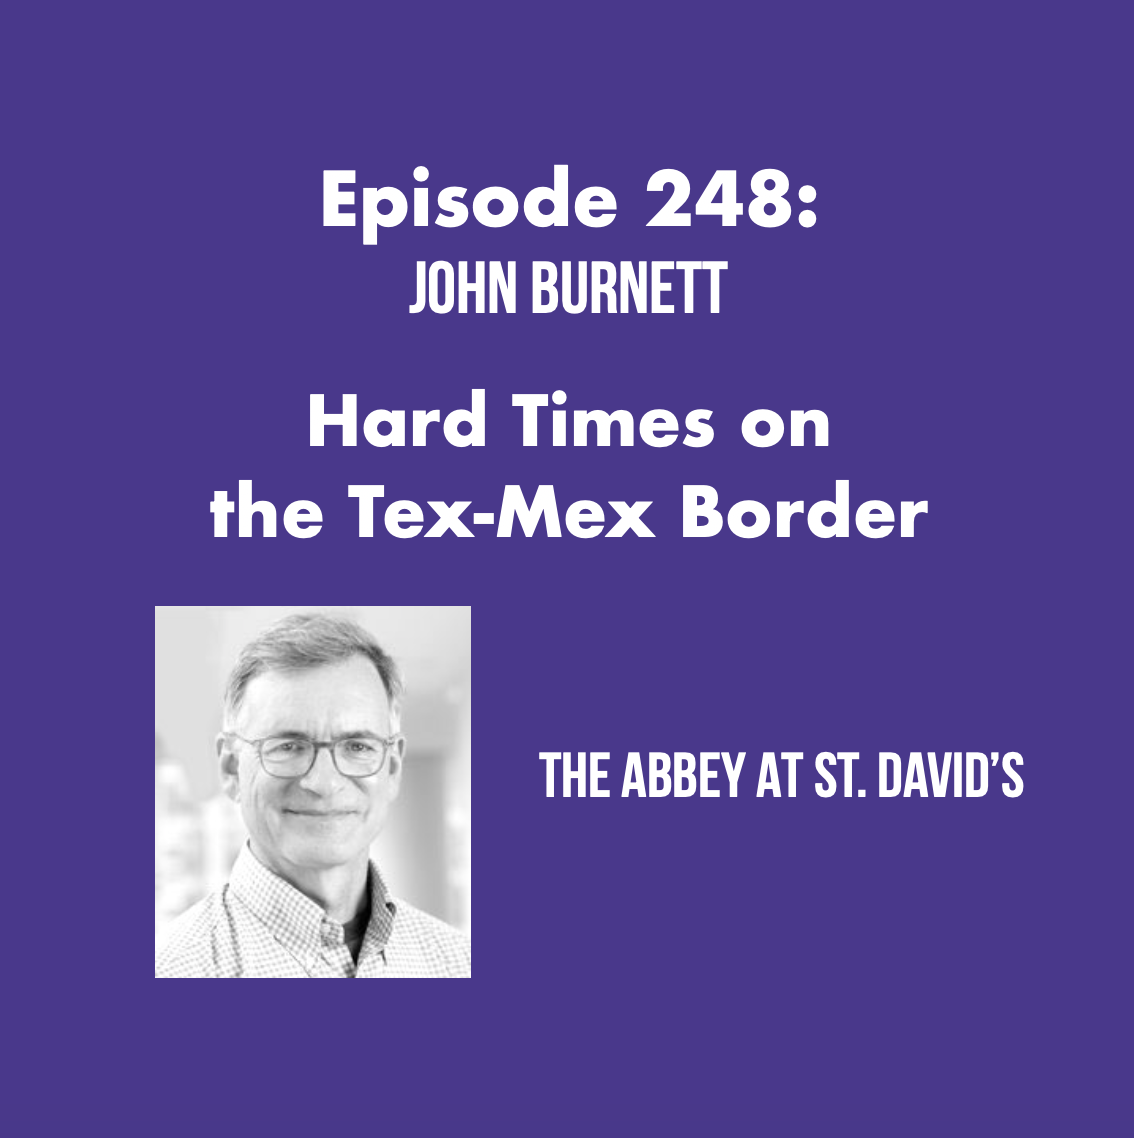 Episode 248: Hard Times on the Tex-Mex Border with John Burnett